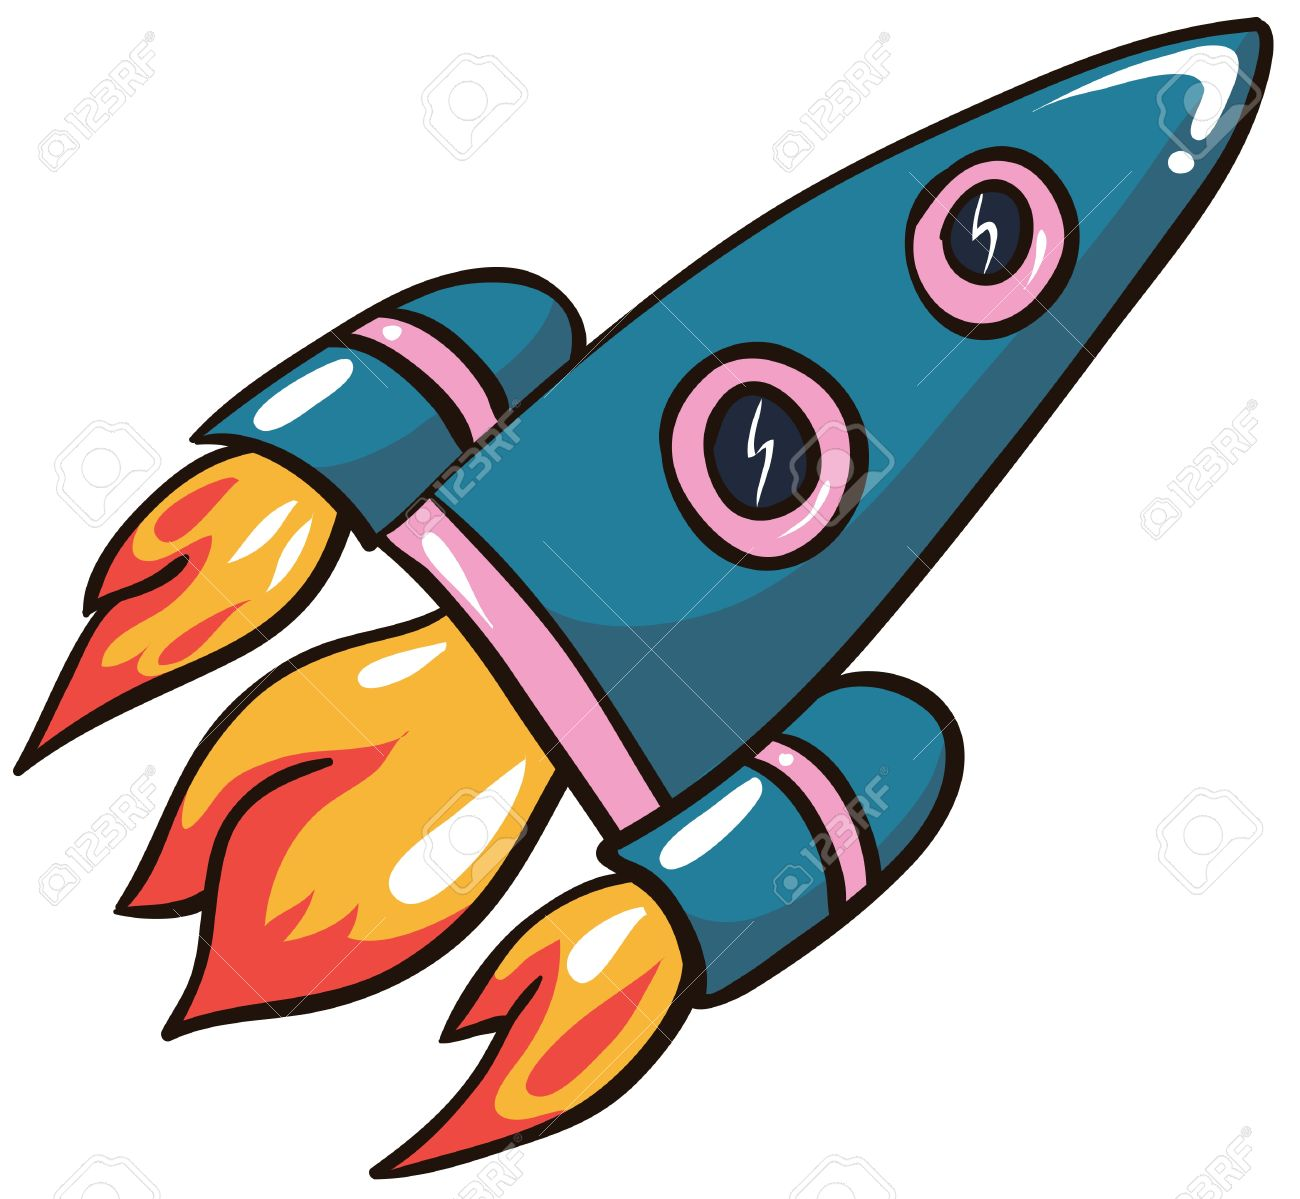 Rocket clipart animated Millions Collection Art Free This